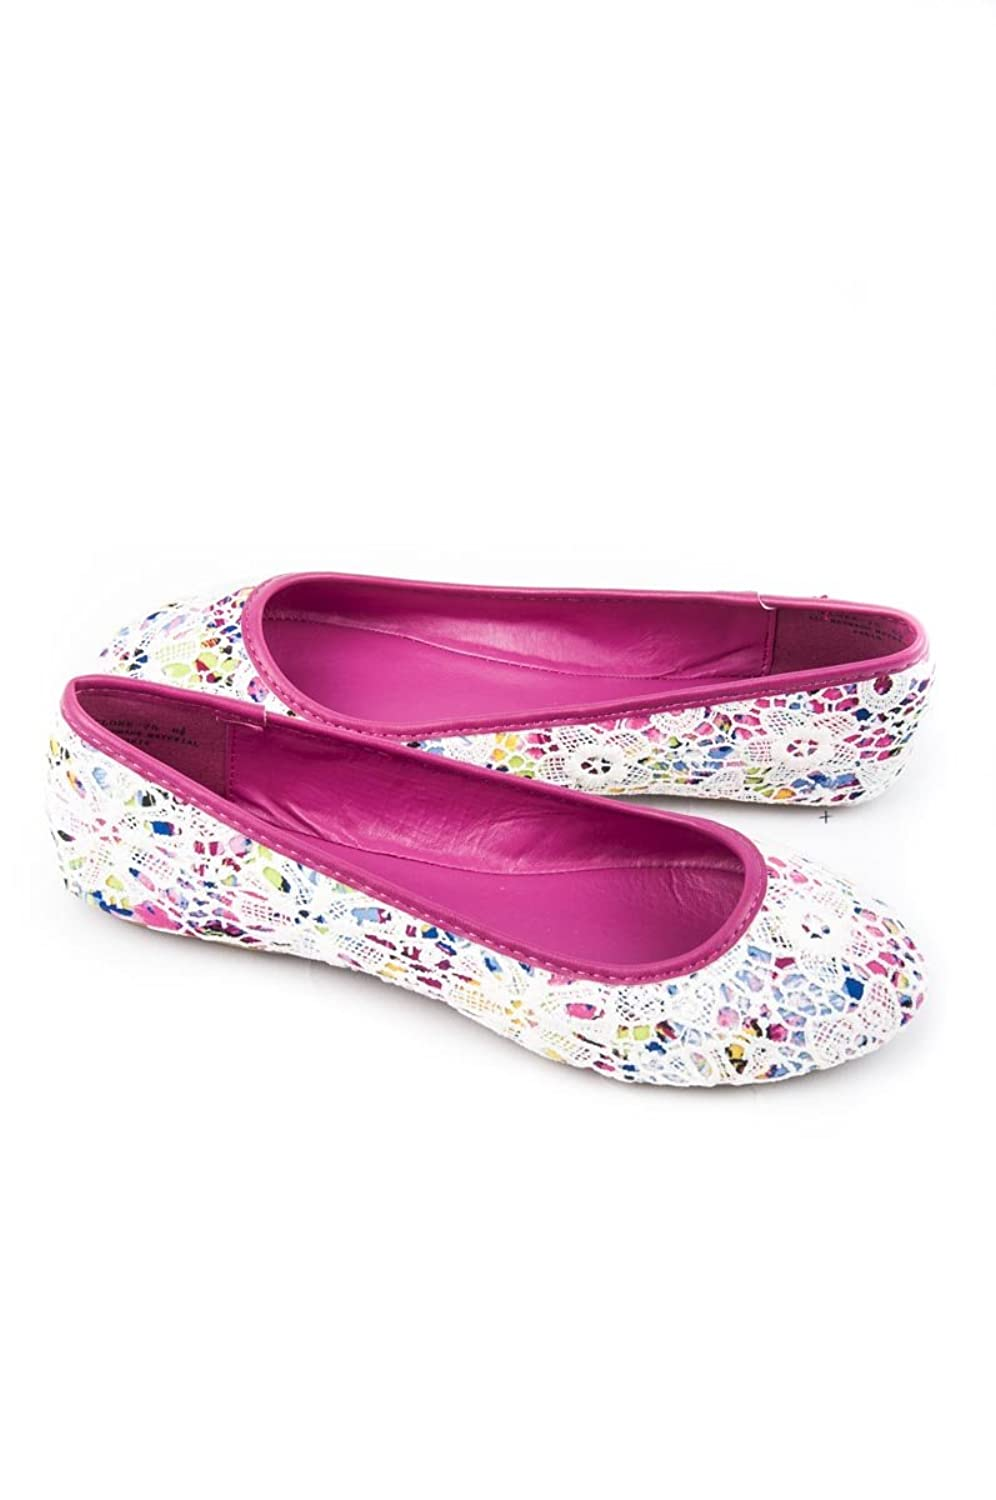 Bamboo Women's Floral Print Round Toe Crochet Slip On Flat Shoes